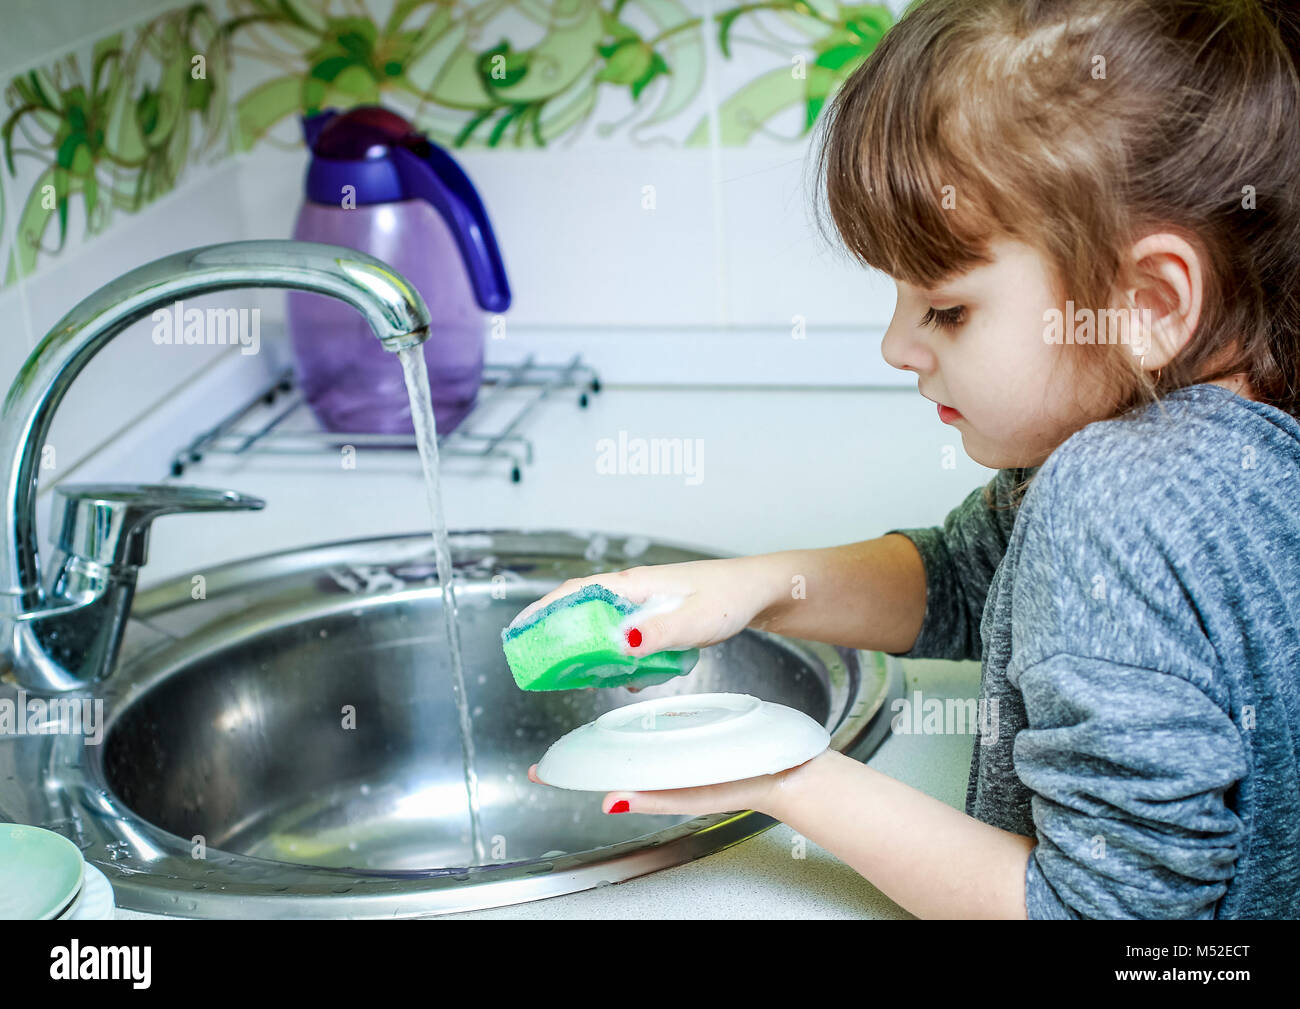 Baby Girl Dishes In Kitchen Stock Photos & Baby Girl Dishes In ...